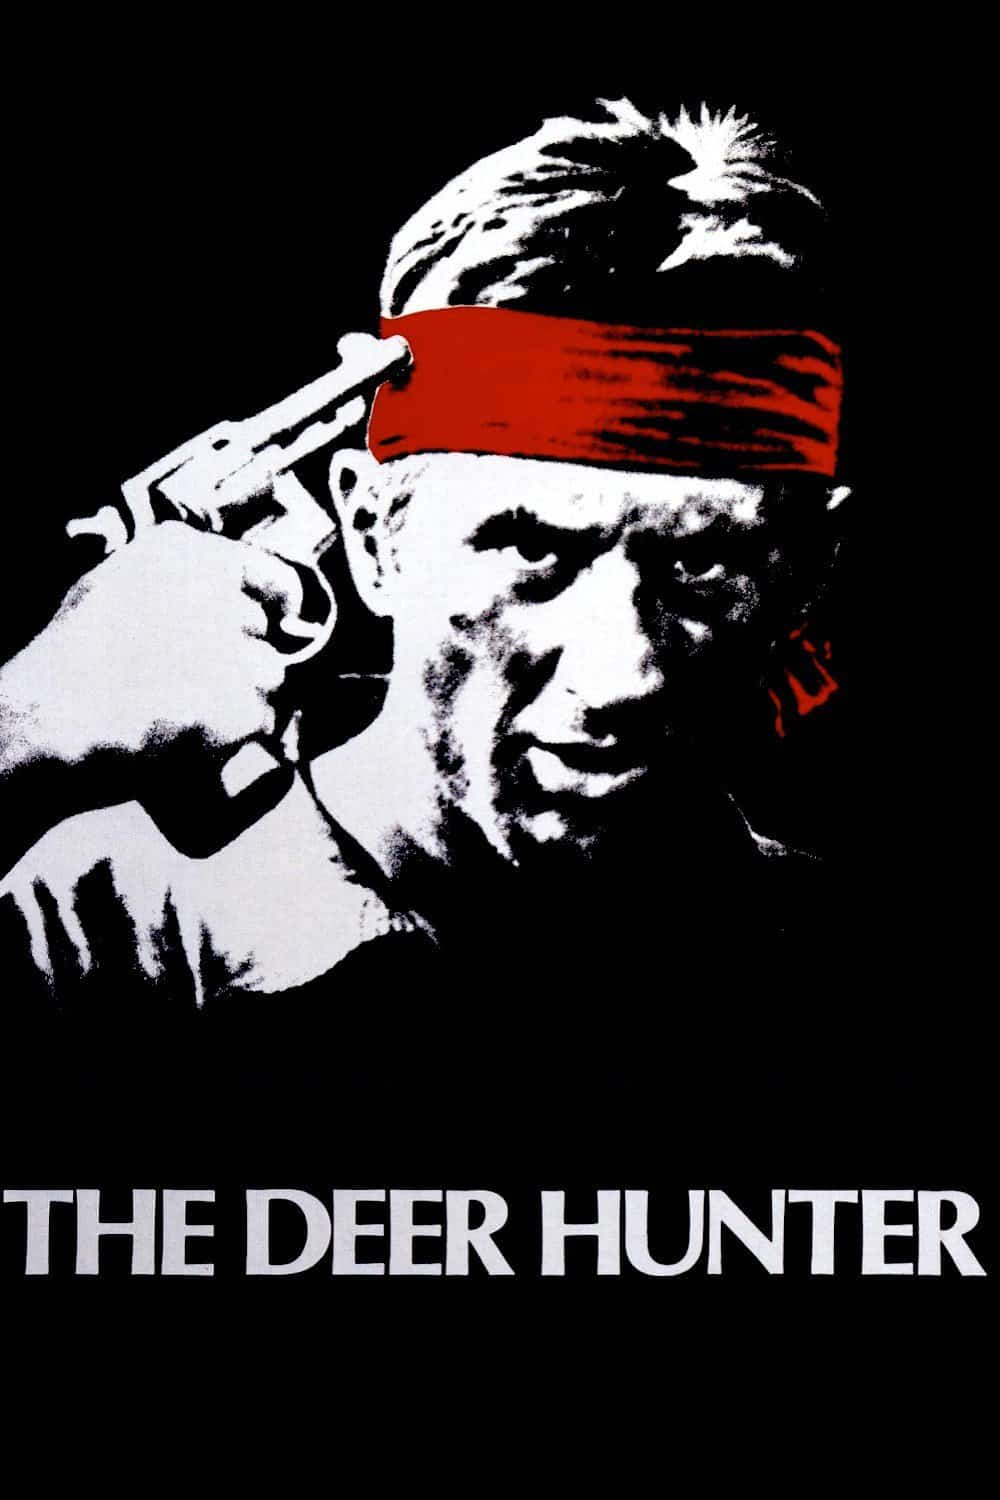 The Deer Hunter, 1978